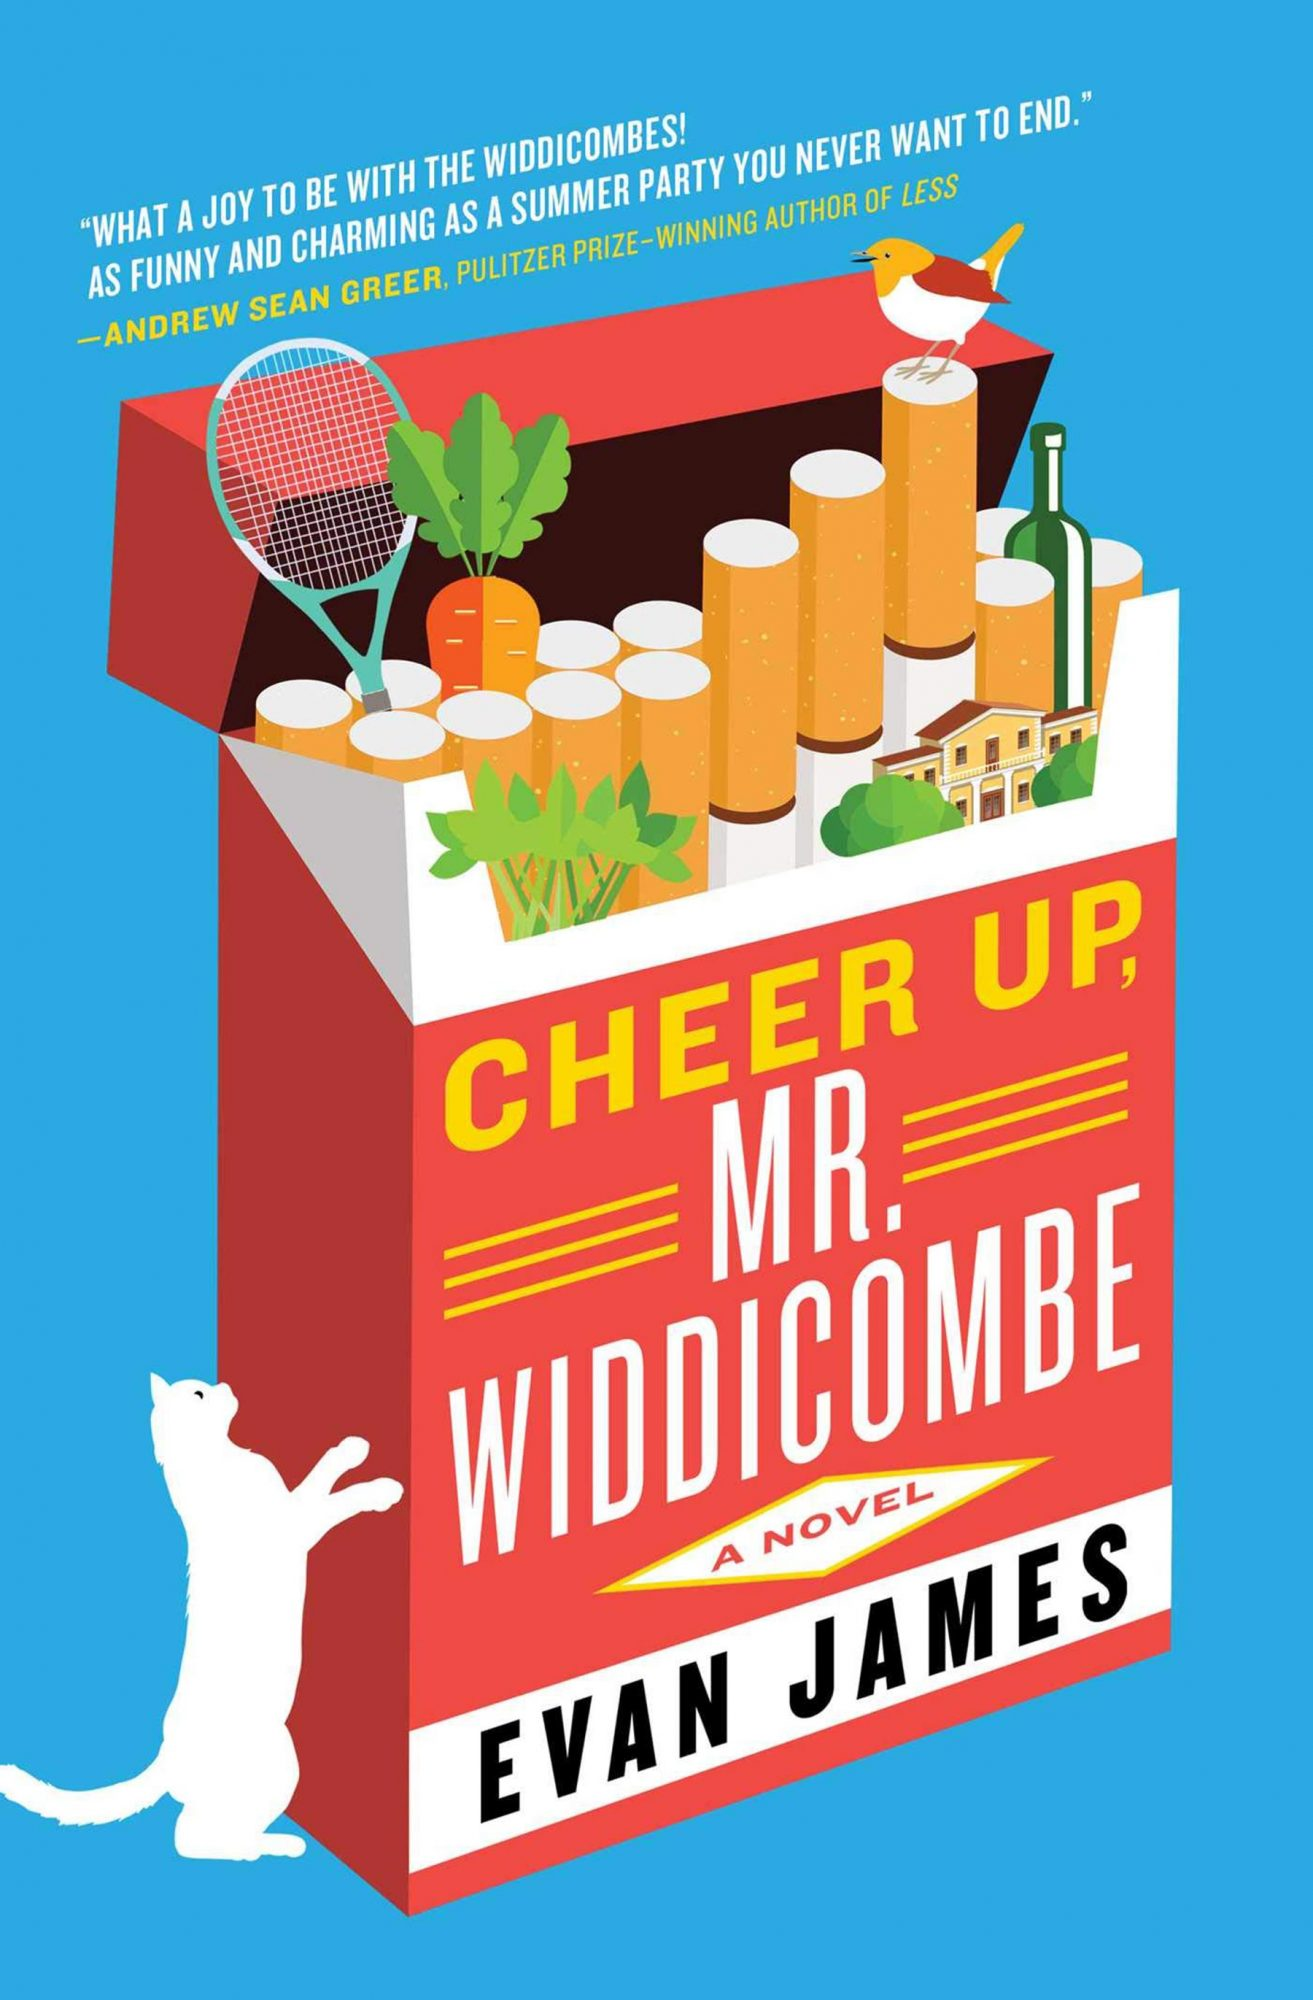 Evan James, Cheer Up, Mr. Widdicombe Publisher: Atria Books